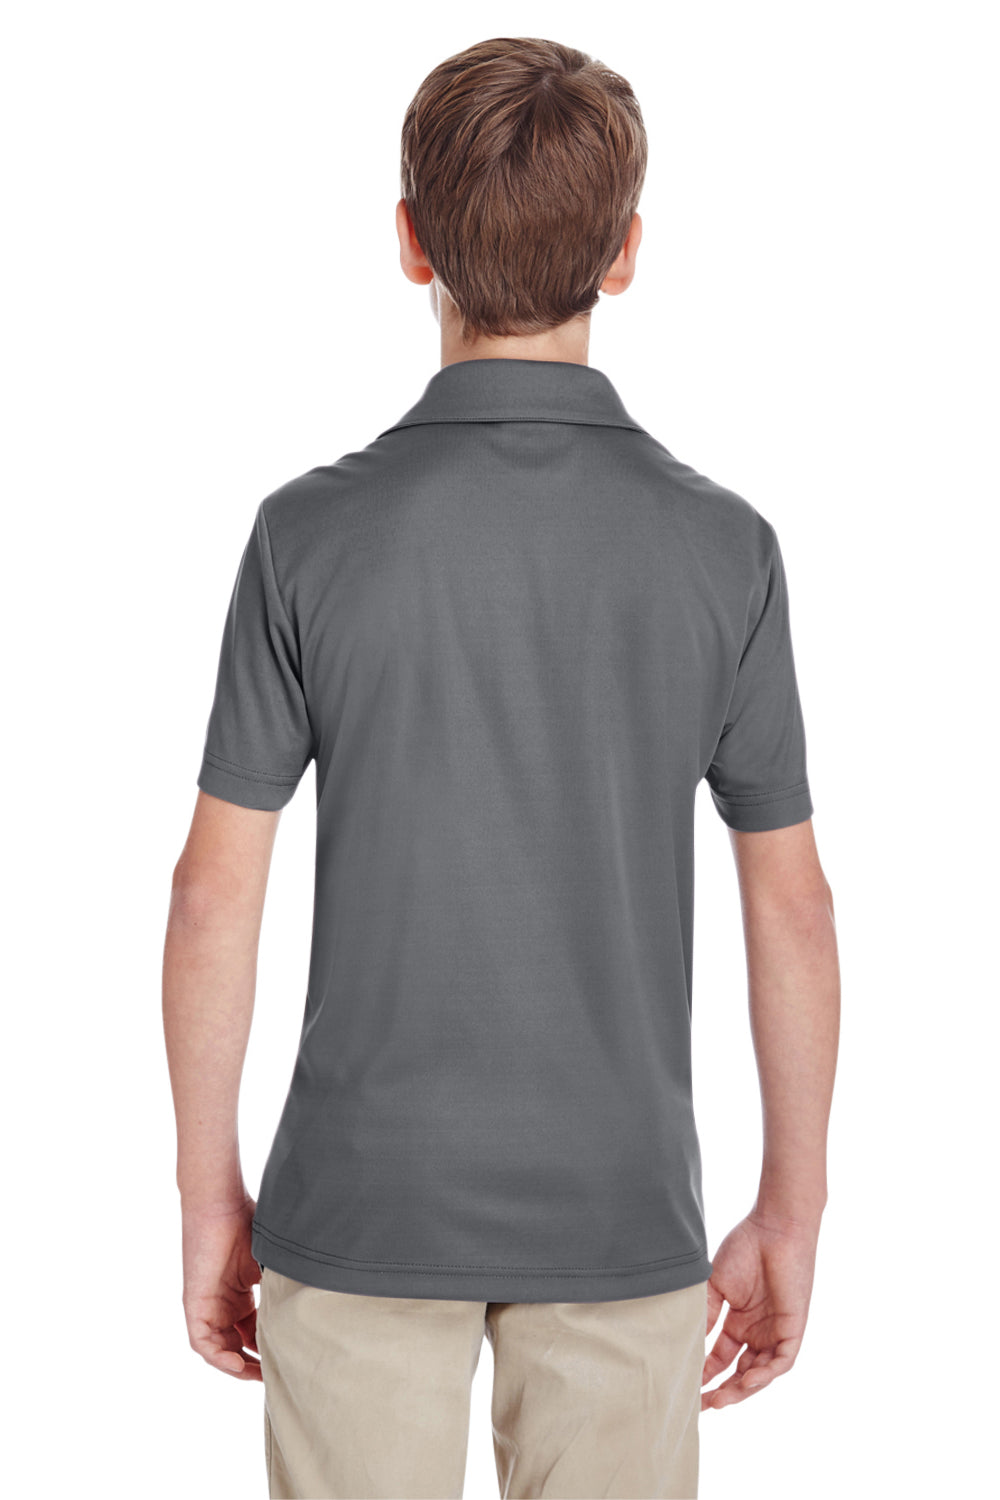 Team 365 TT51Y Youth Zone Performance Moisture Wicking Short Sleeve Polo Shirt Graphite Grey Back